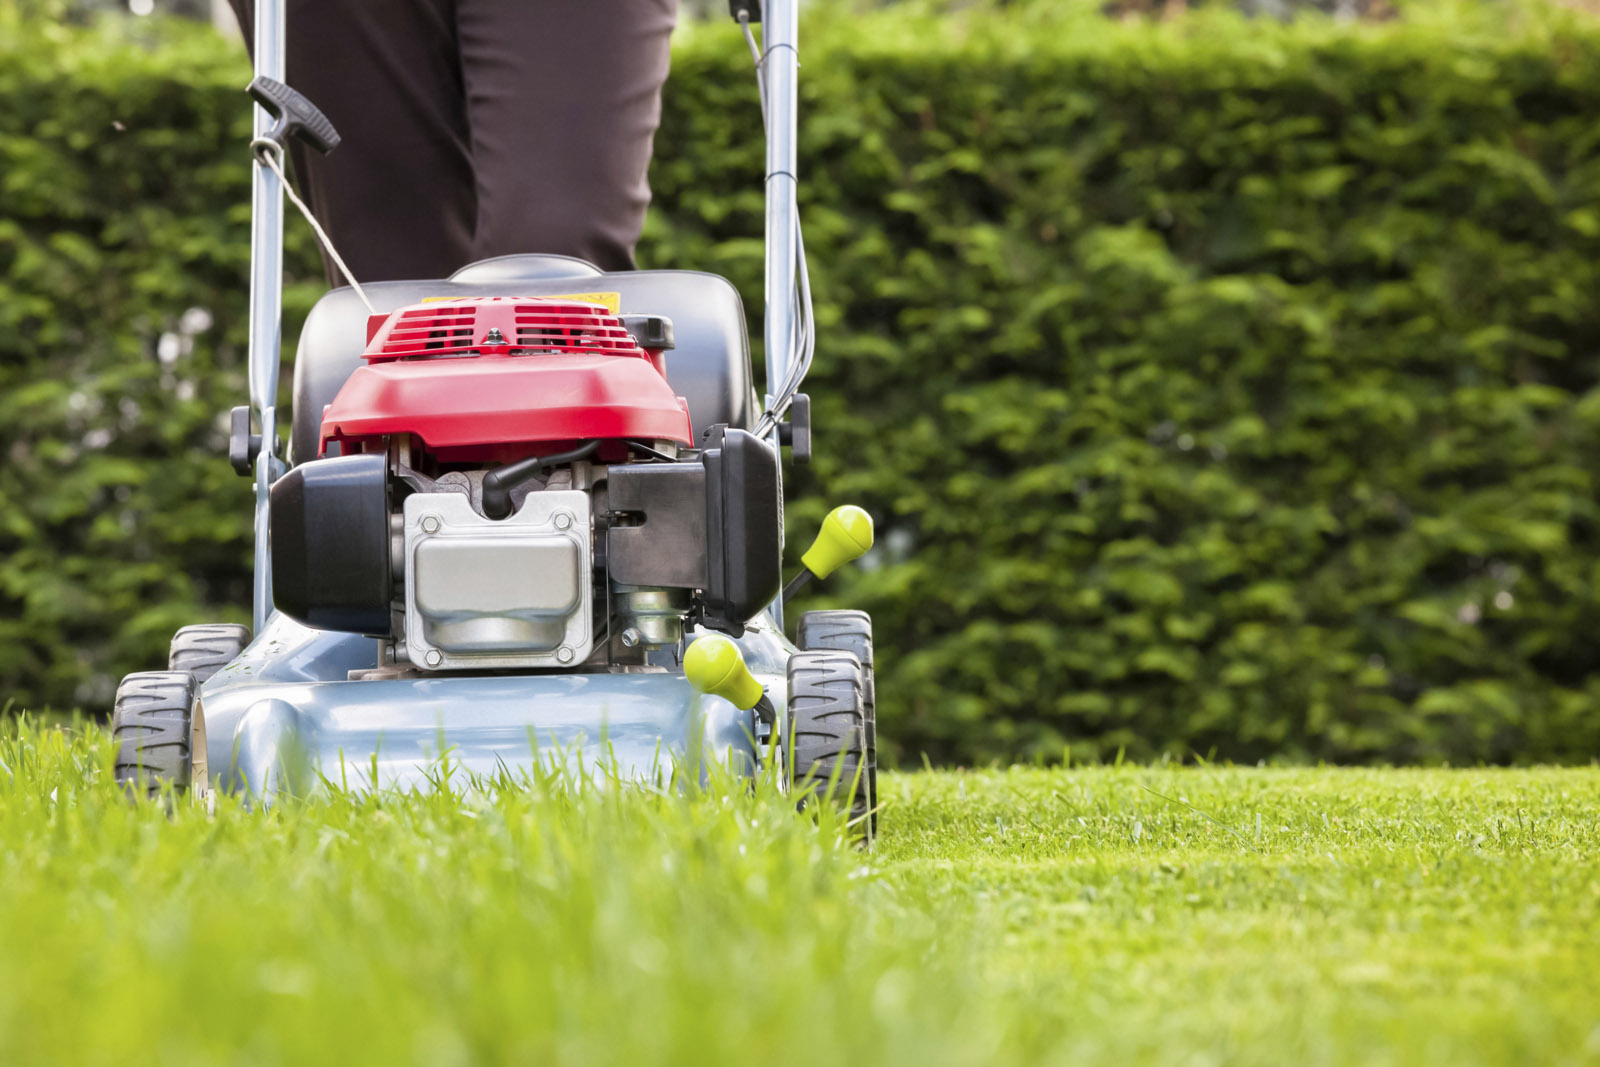 Resolve to maintain a healthy lawn in 2016